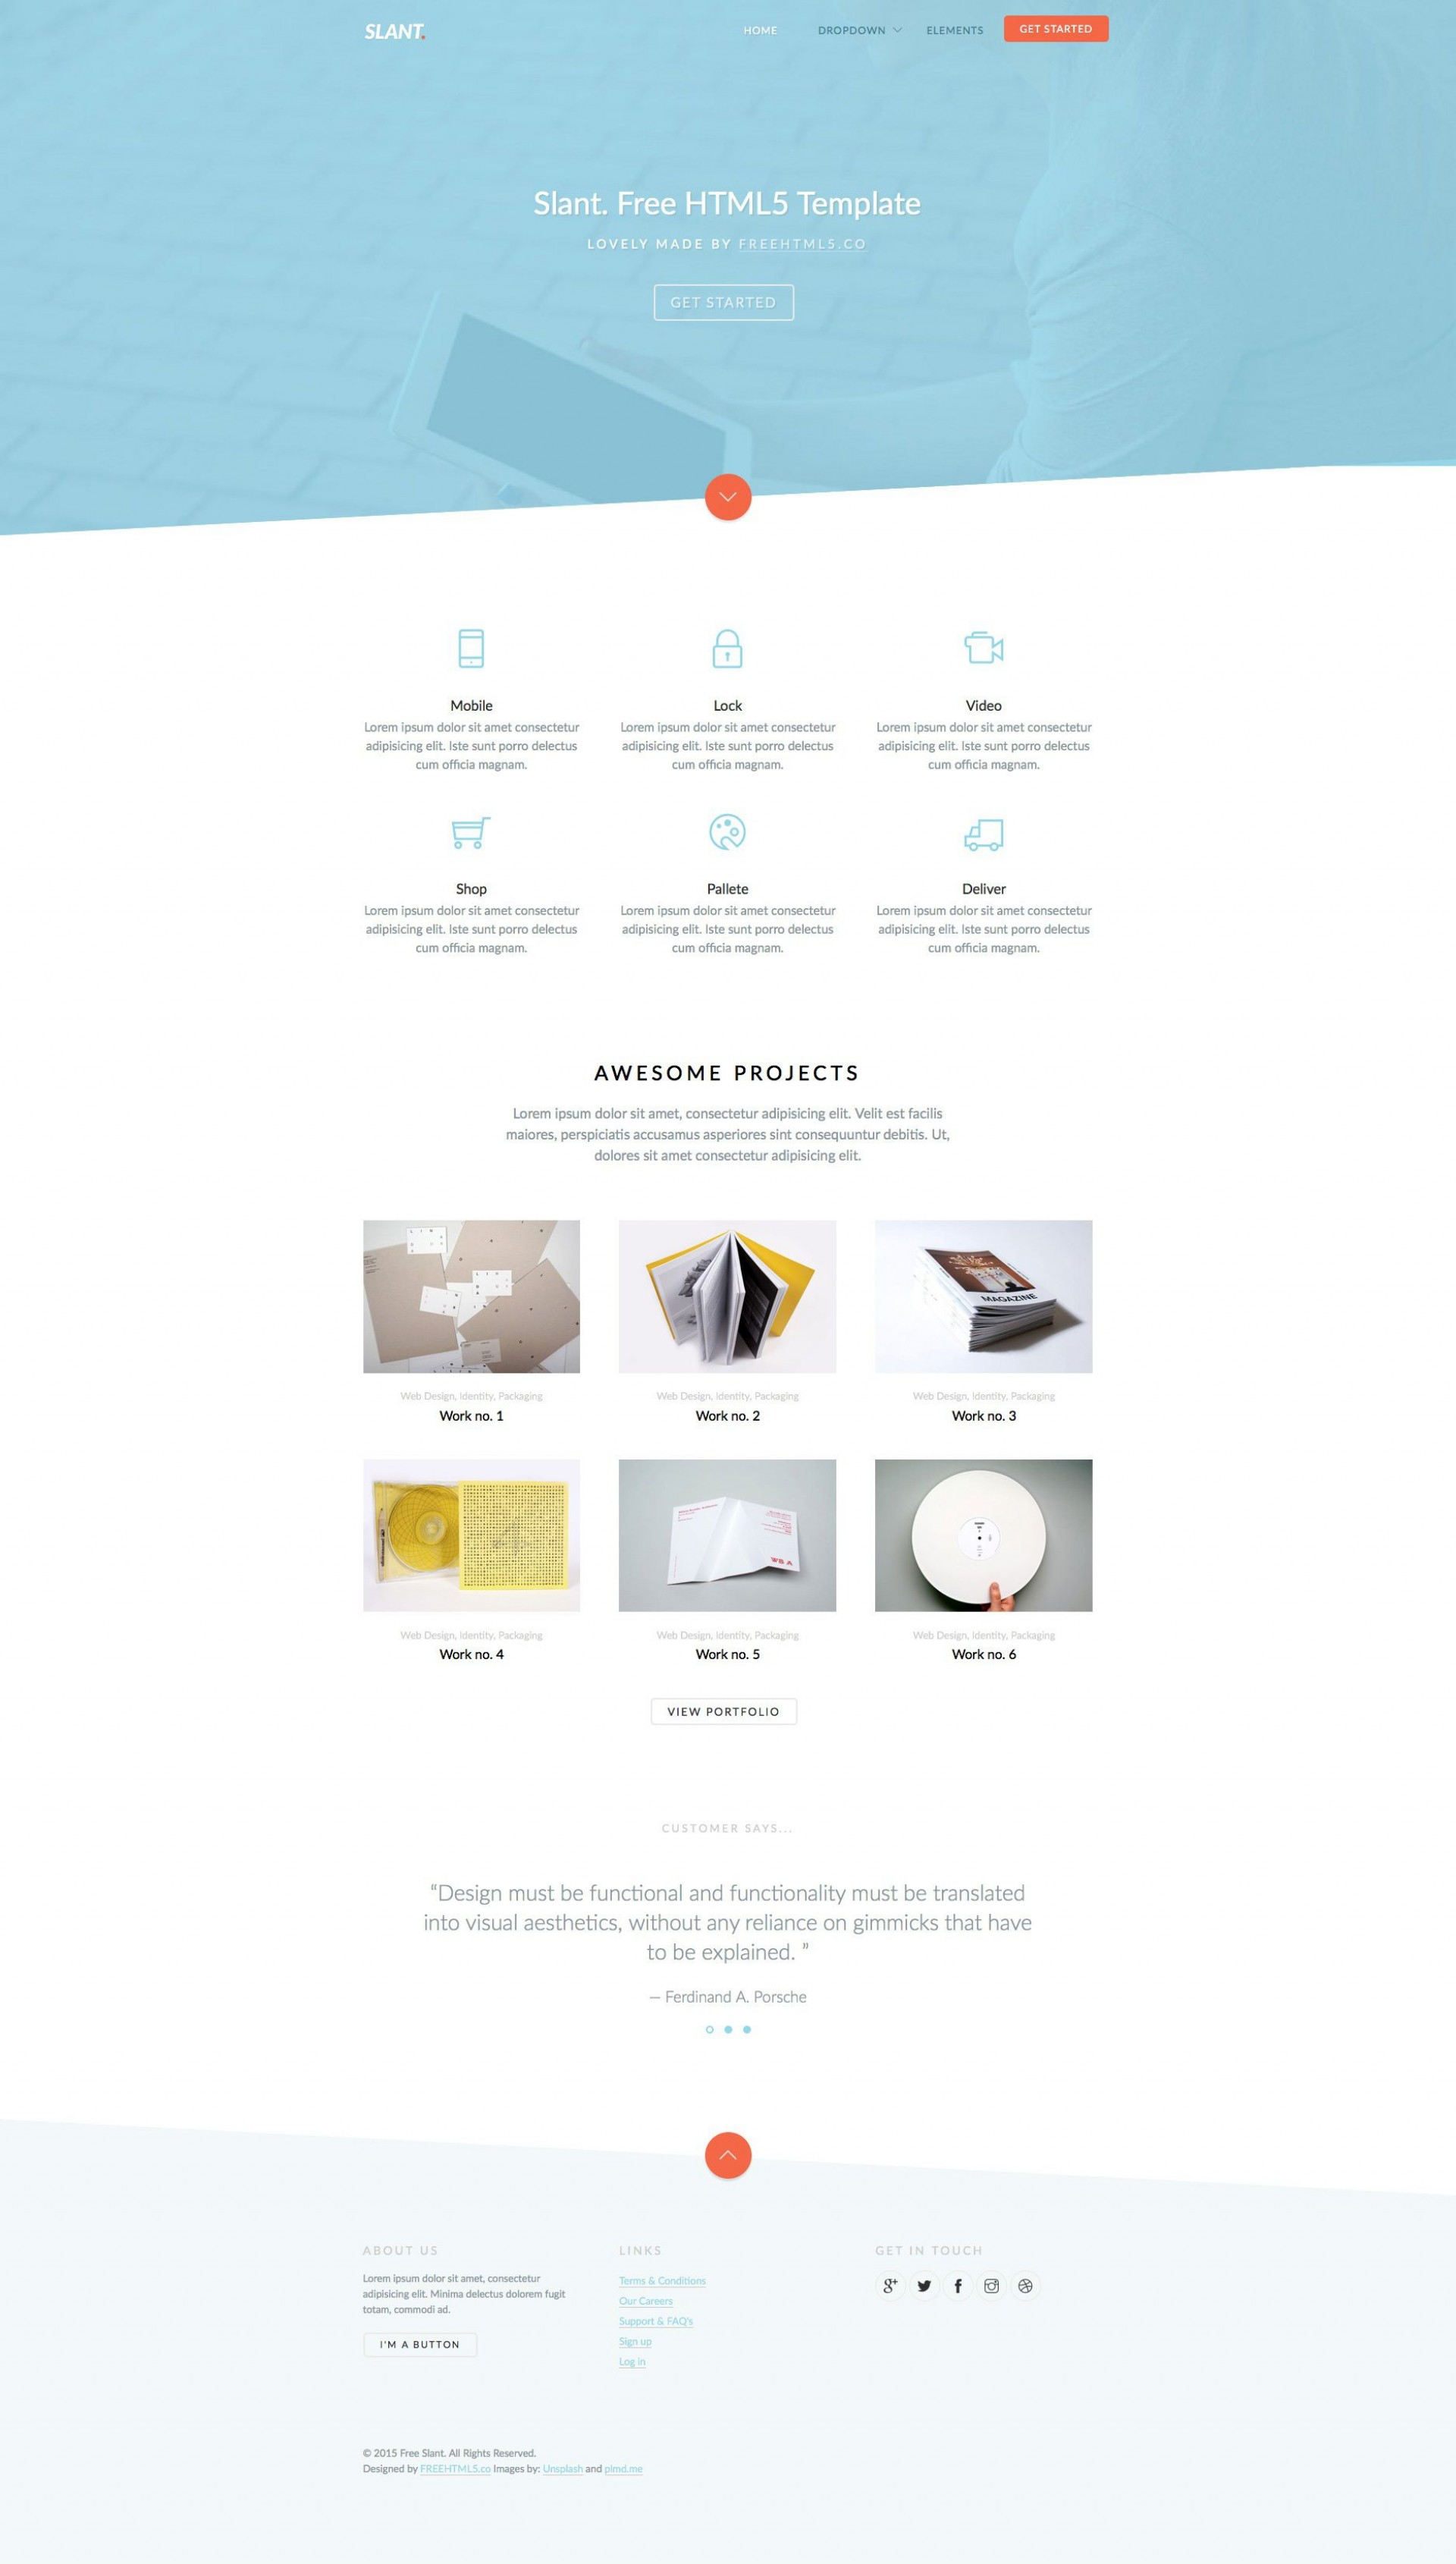 006 Awesome Free Responsive Website Template Download Html And Cs Jquery High Resolution  For It Company1920